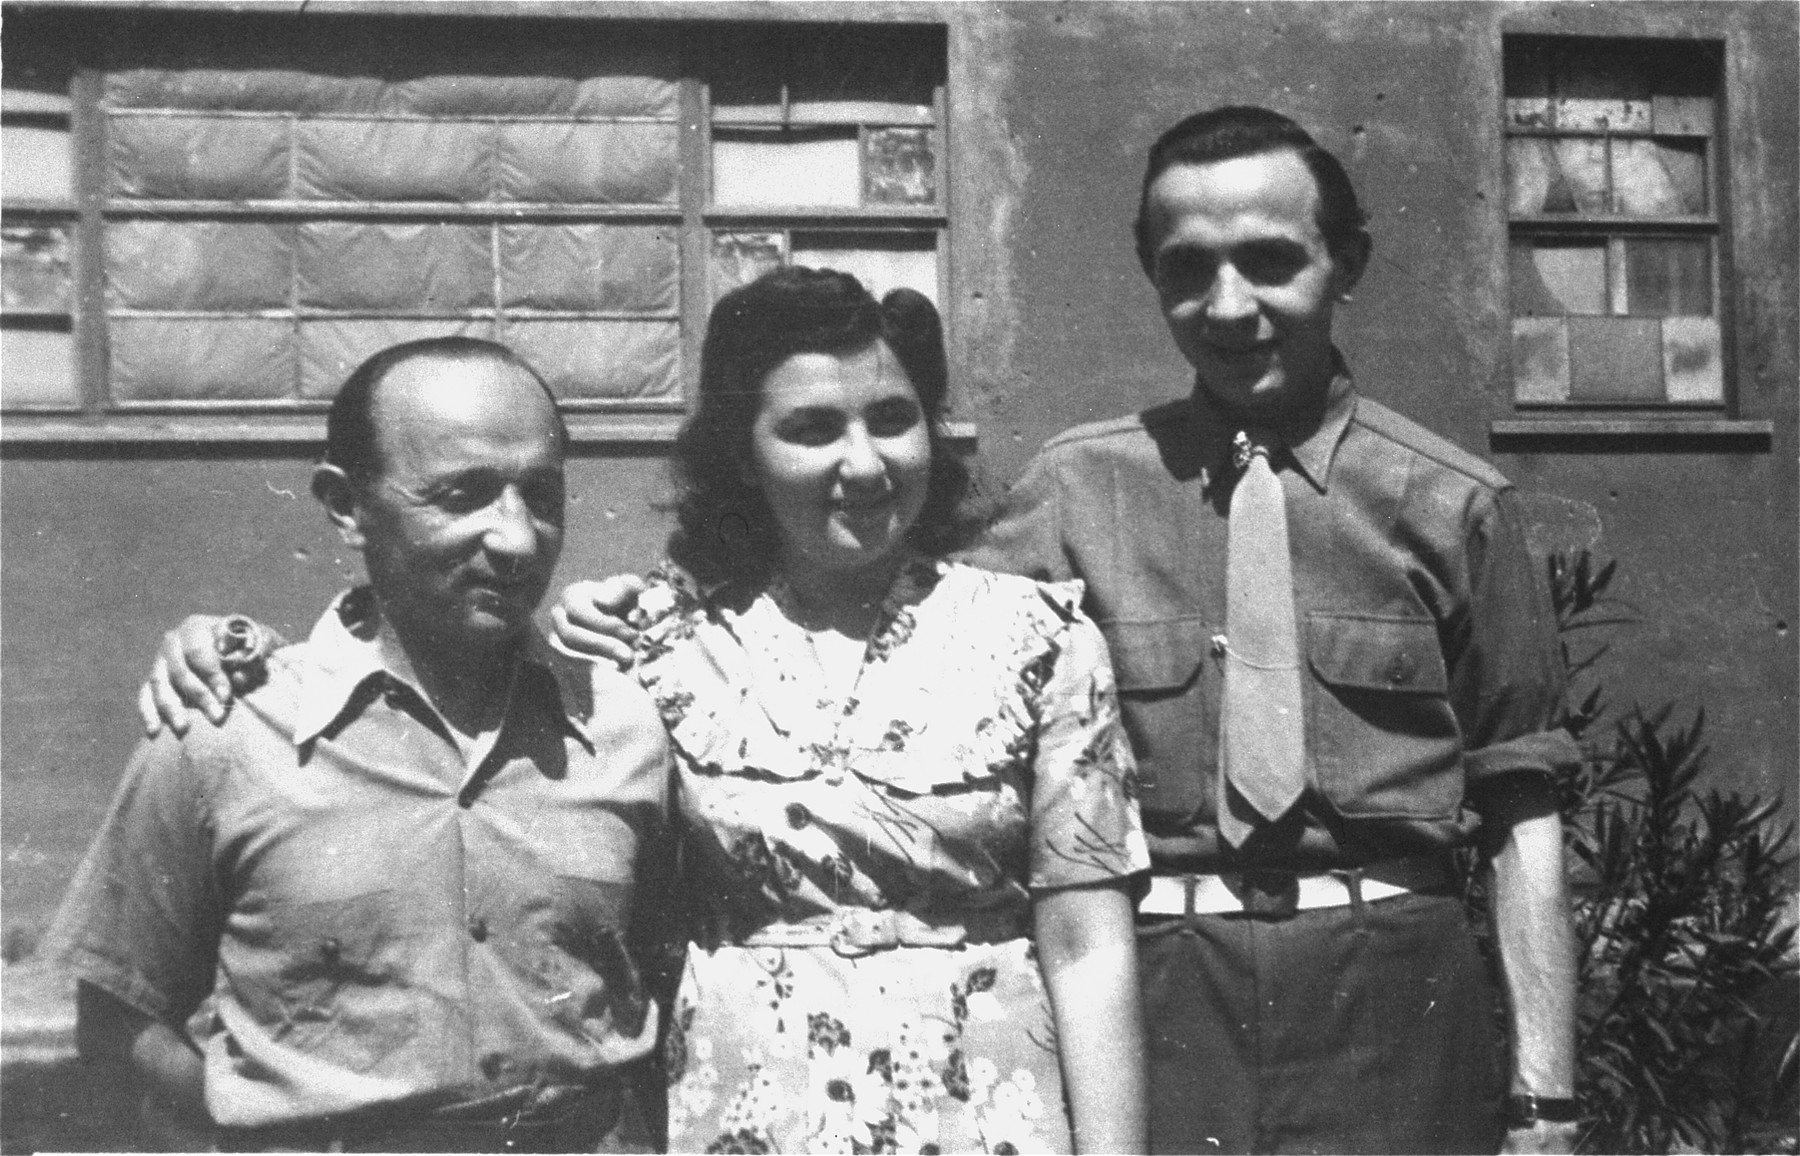 Three Jewish DPs pose outside at the Cinecitta displaced persons camp in Rome.  From left to right are Edward Arzt and his children Evelyn (later Bergl), and Heinz.